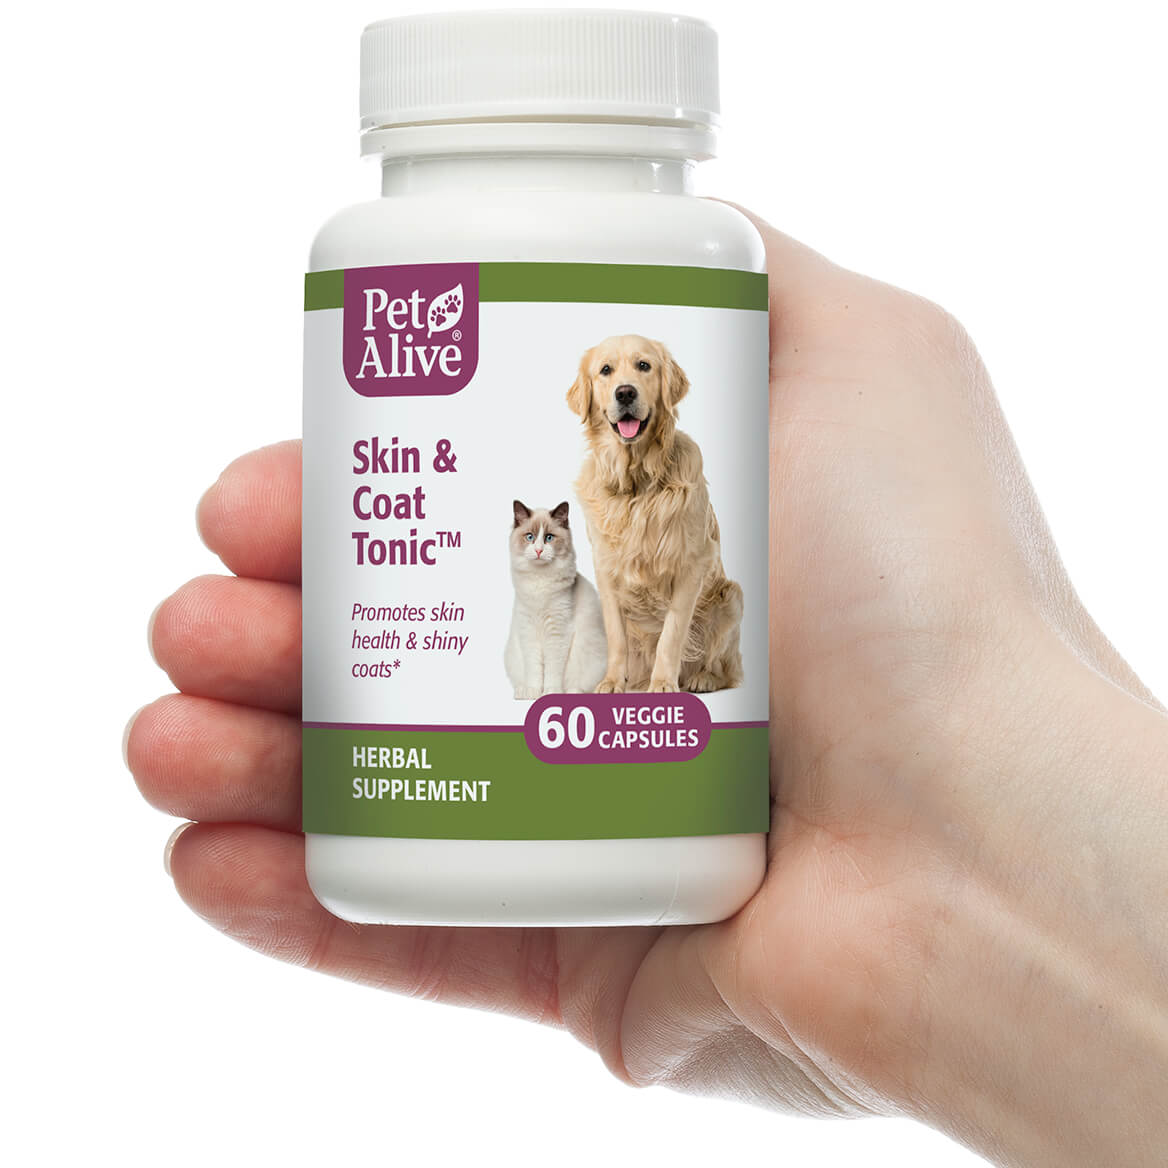 Skin and Coat Tonic™ for Shiny & Glossy Fur-351908